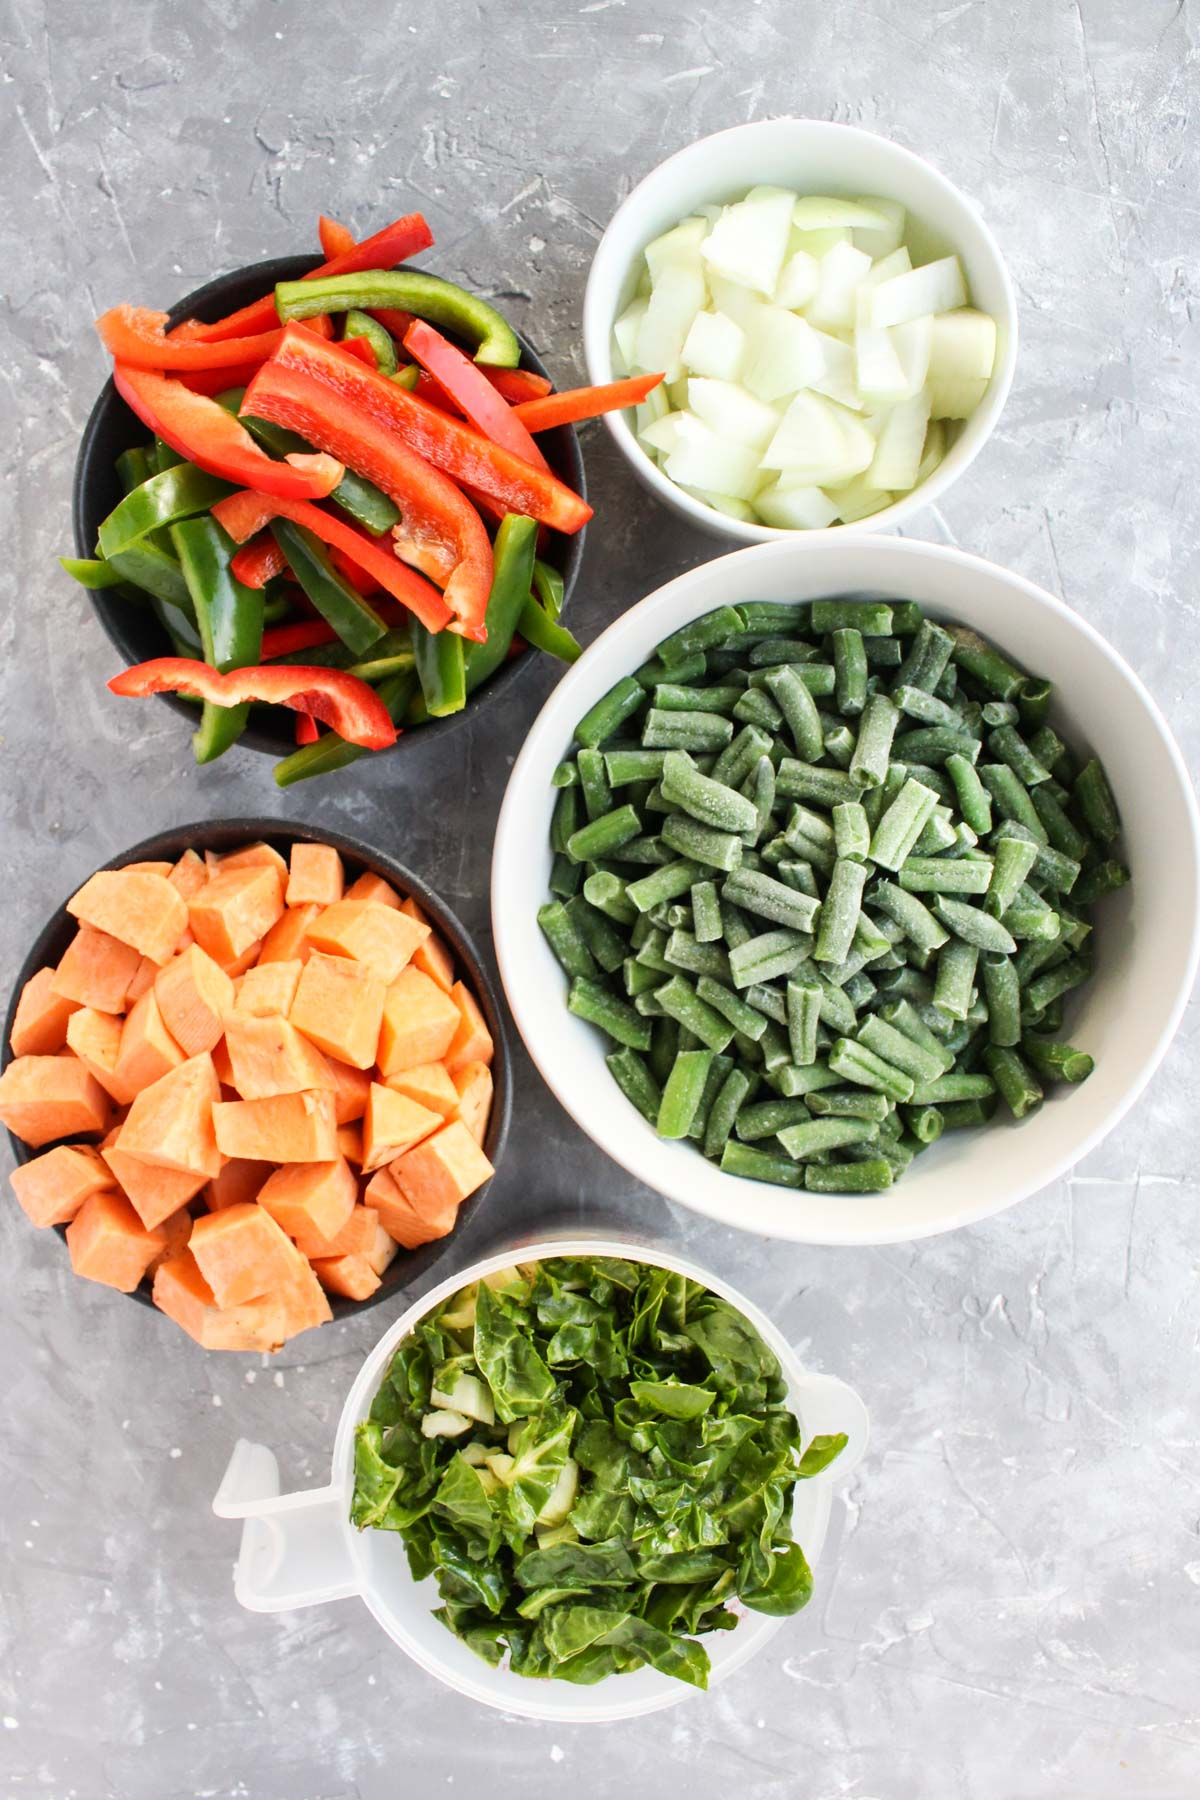 Vegetables prepped and laid out for thai red curry chicken soup.